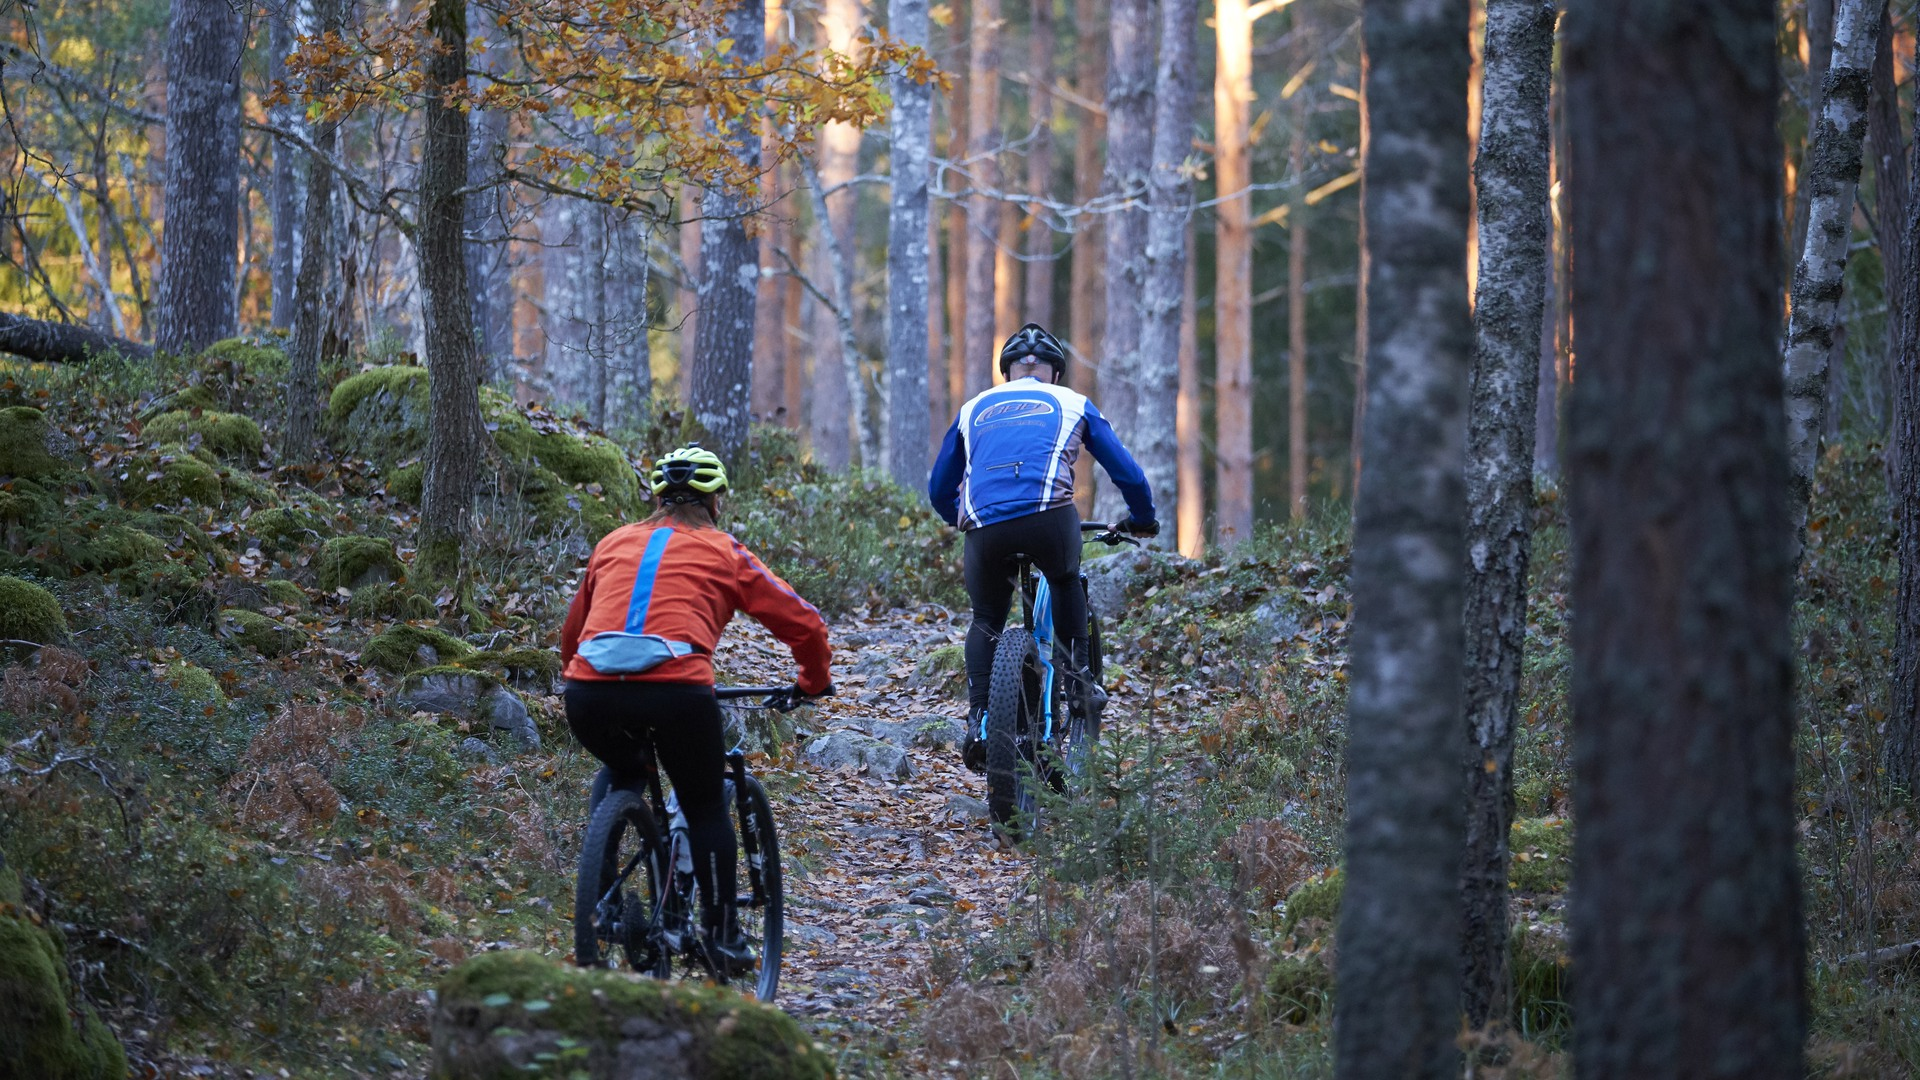 Mountainbike-cyklister